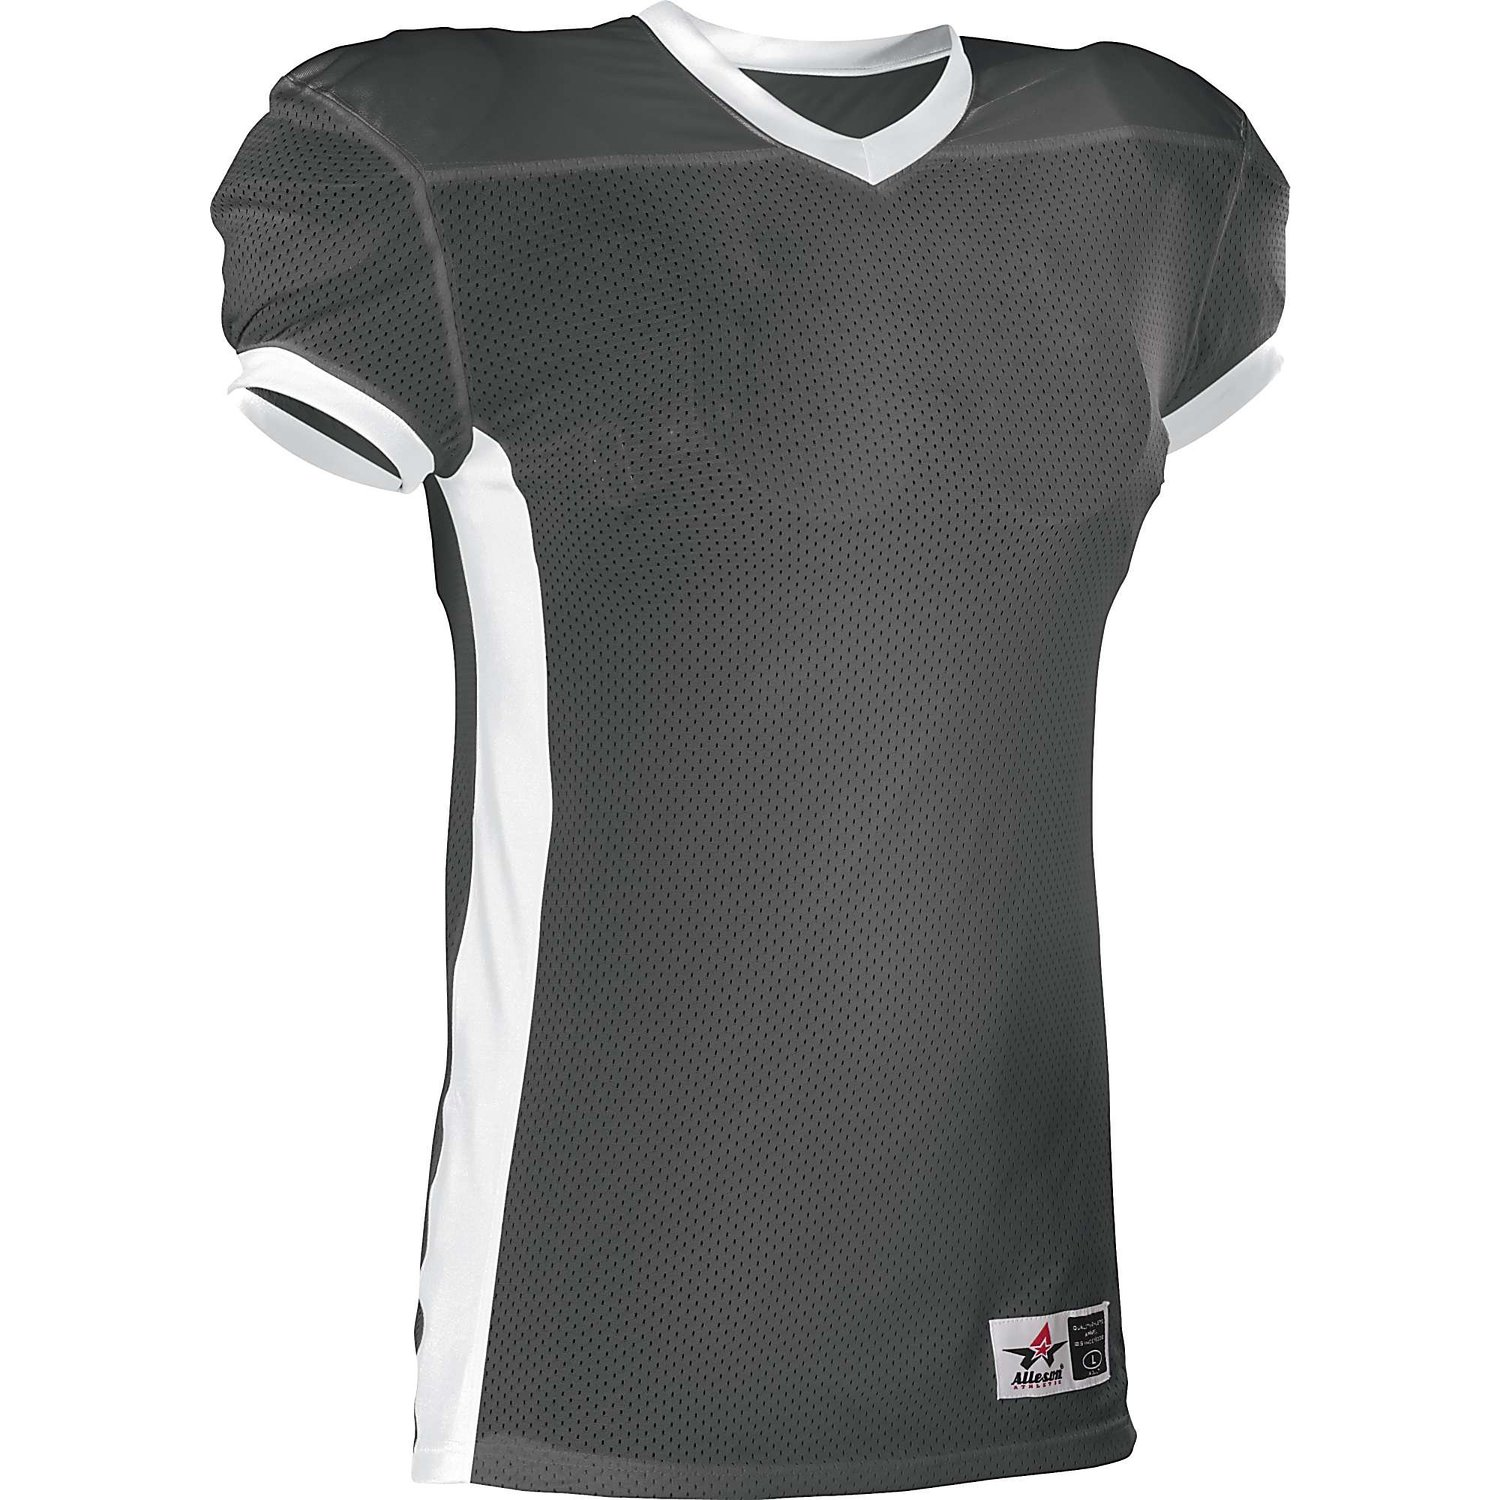 afa9c7573 Buy Alleson Youth Football Jersey in Cheap Price on Alibaba.com